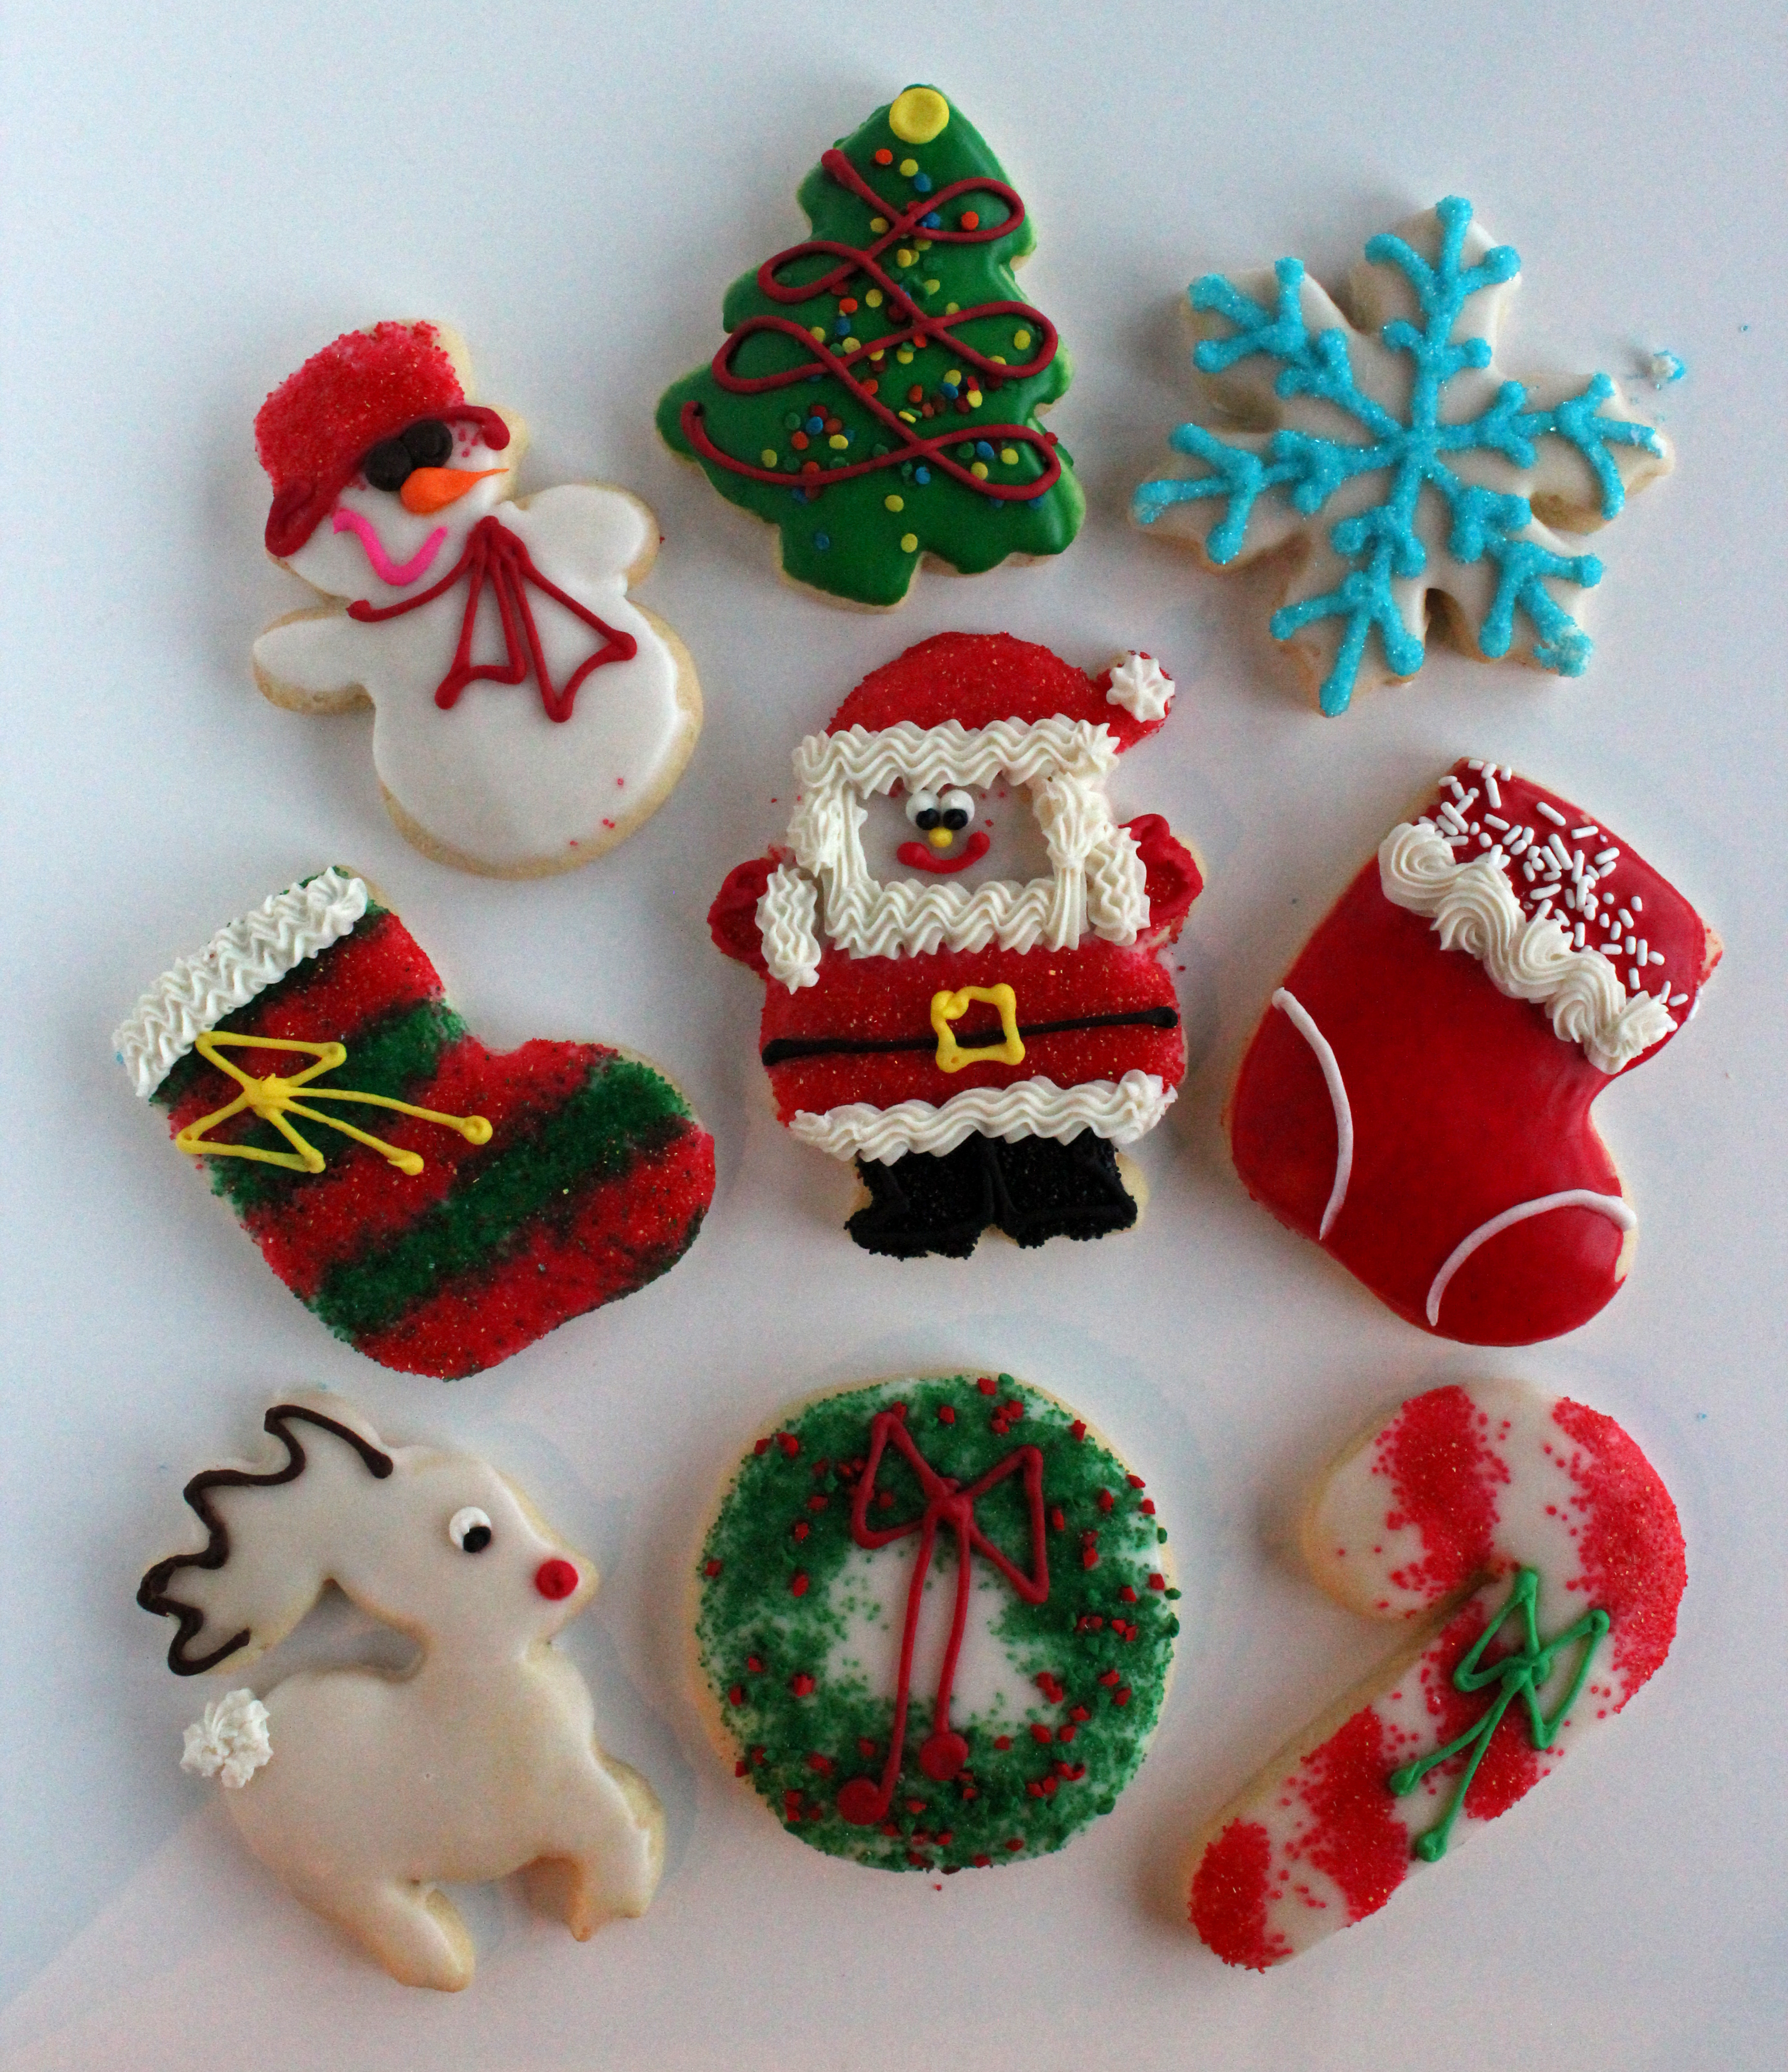 Cut Out Decorated CookiesThe Cookie Company